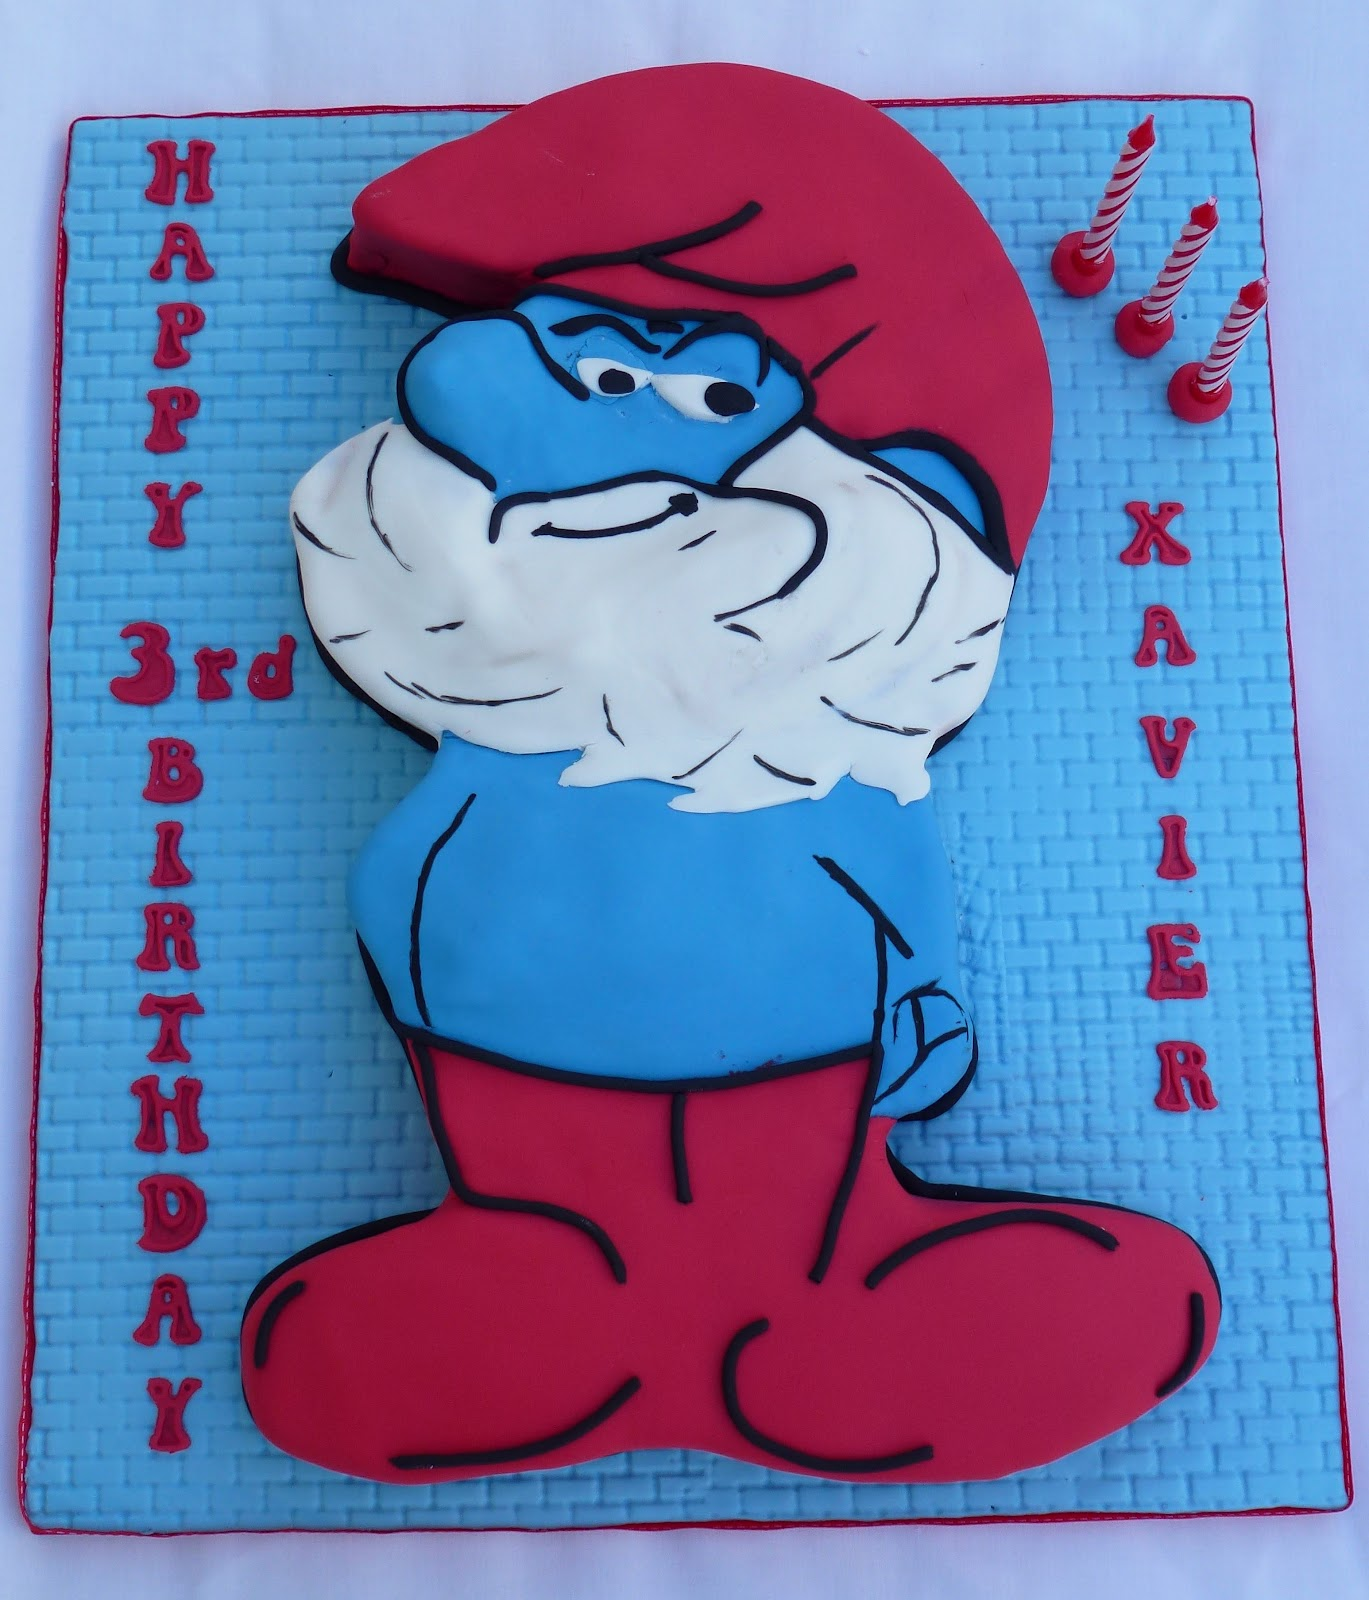 Cakes And Other Delights Papa Smurf